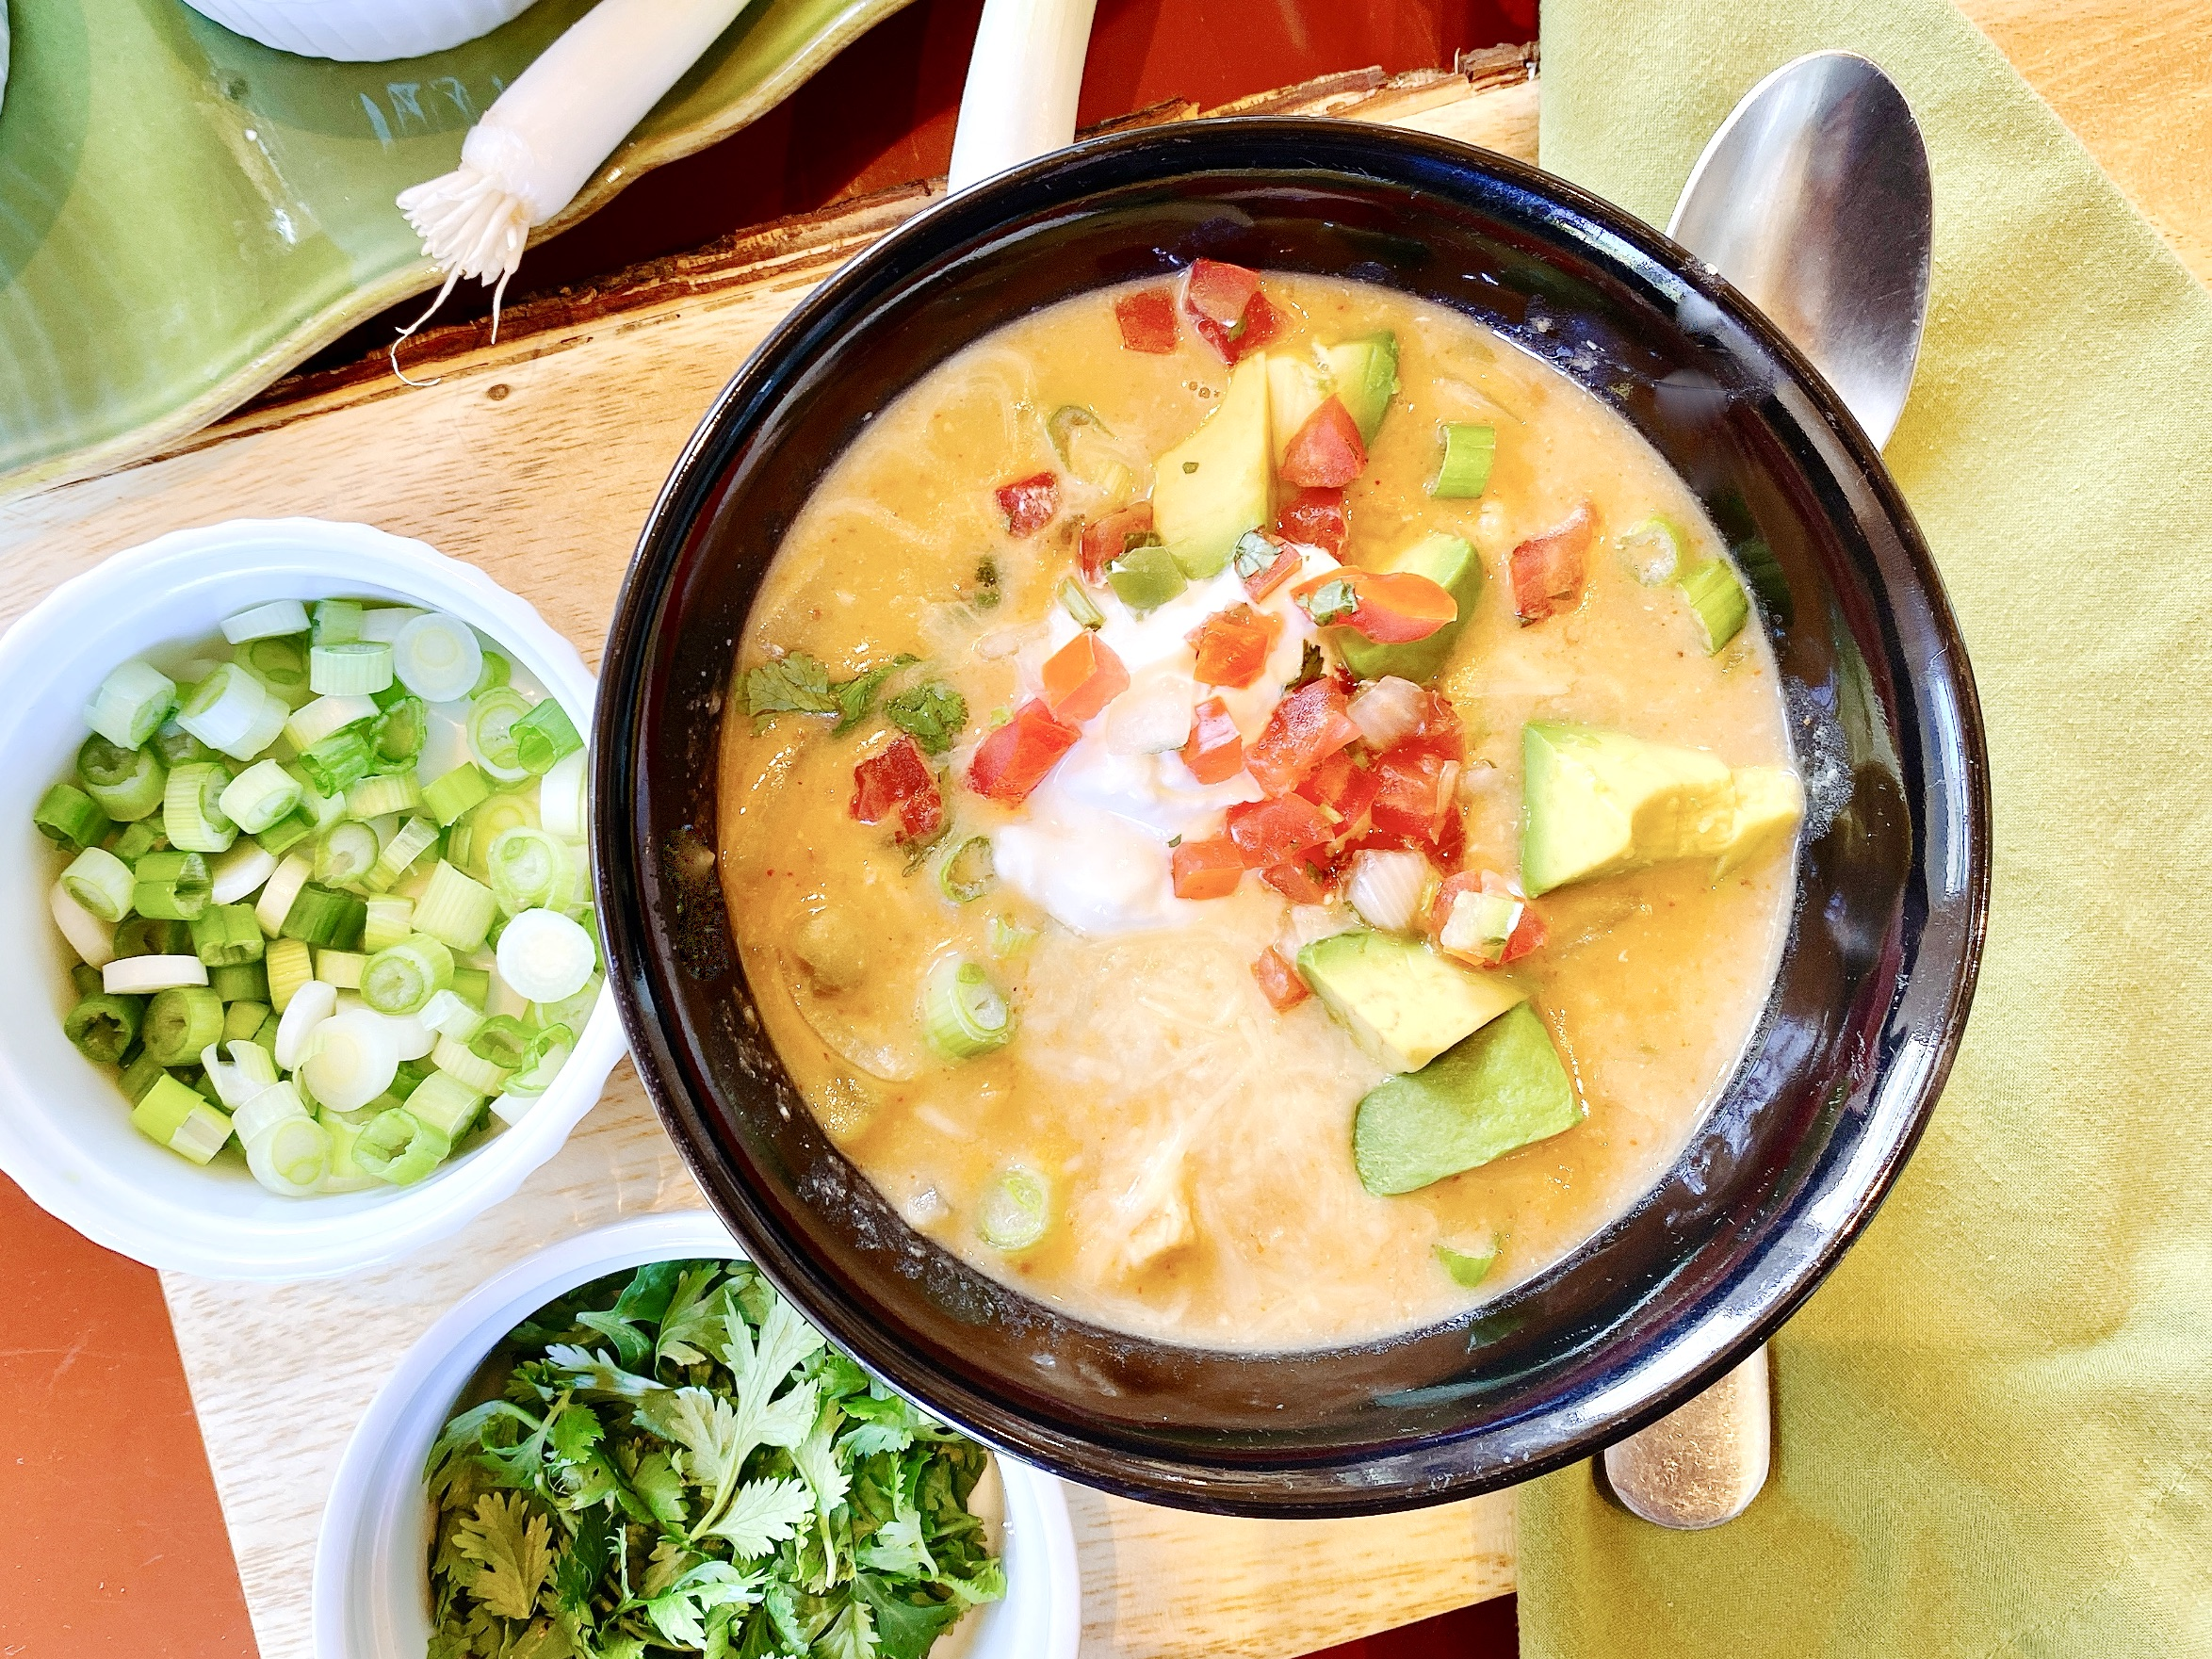 bowl of white chicken chili topped with tomato salsa, sour cream, cheese, green onions and avocado